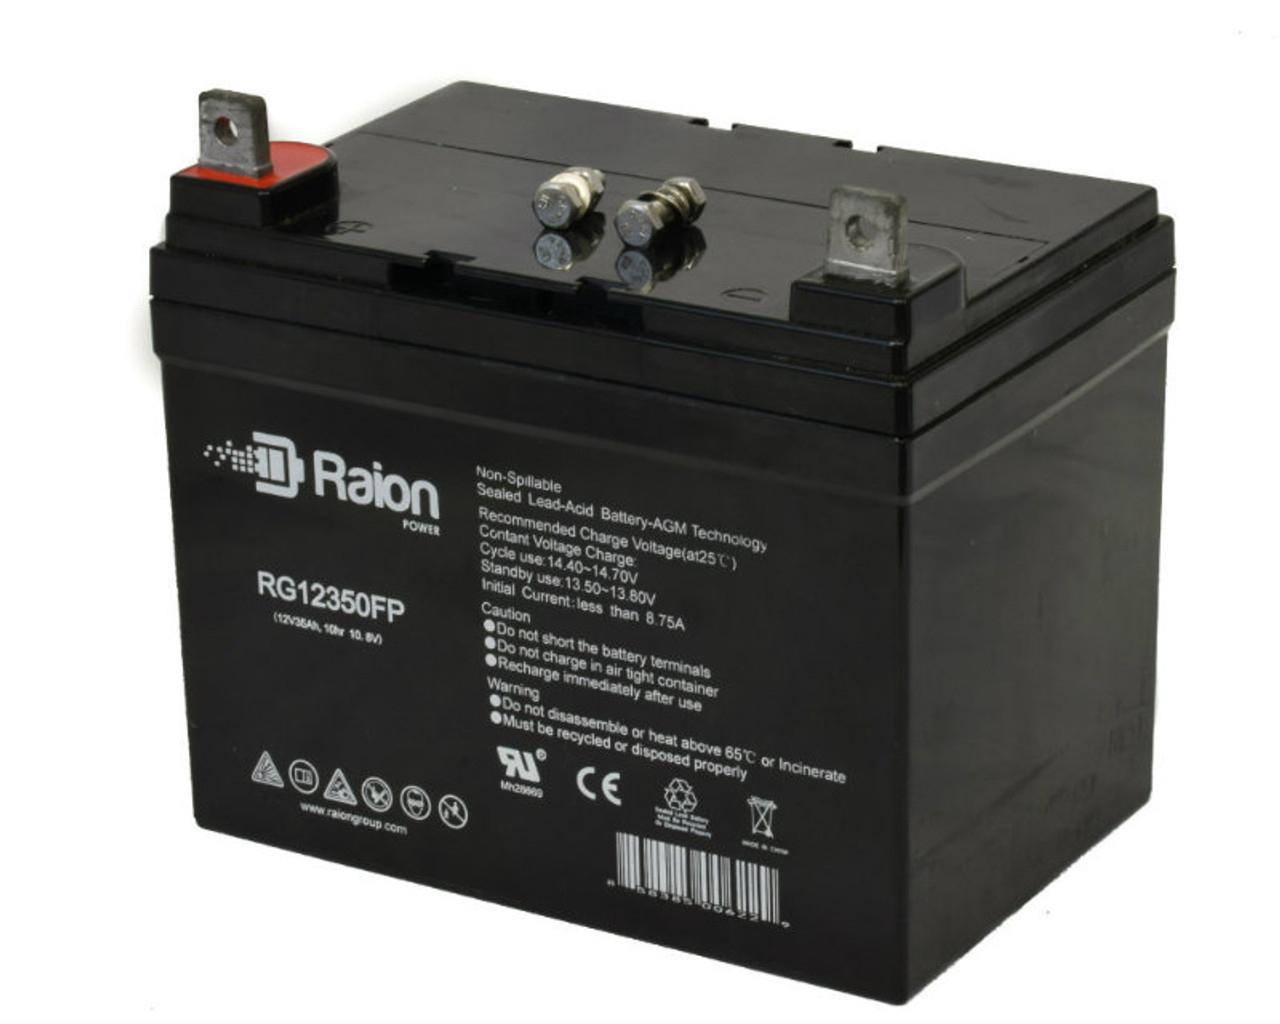 RG12350FP Sealed Lead Acid Battery Pack For Merits P171 Mobility Scooter